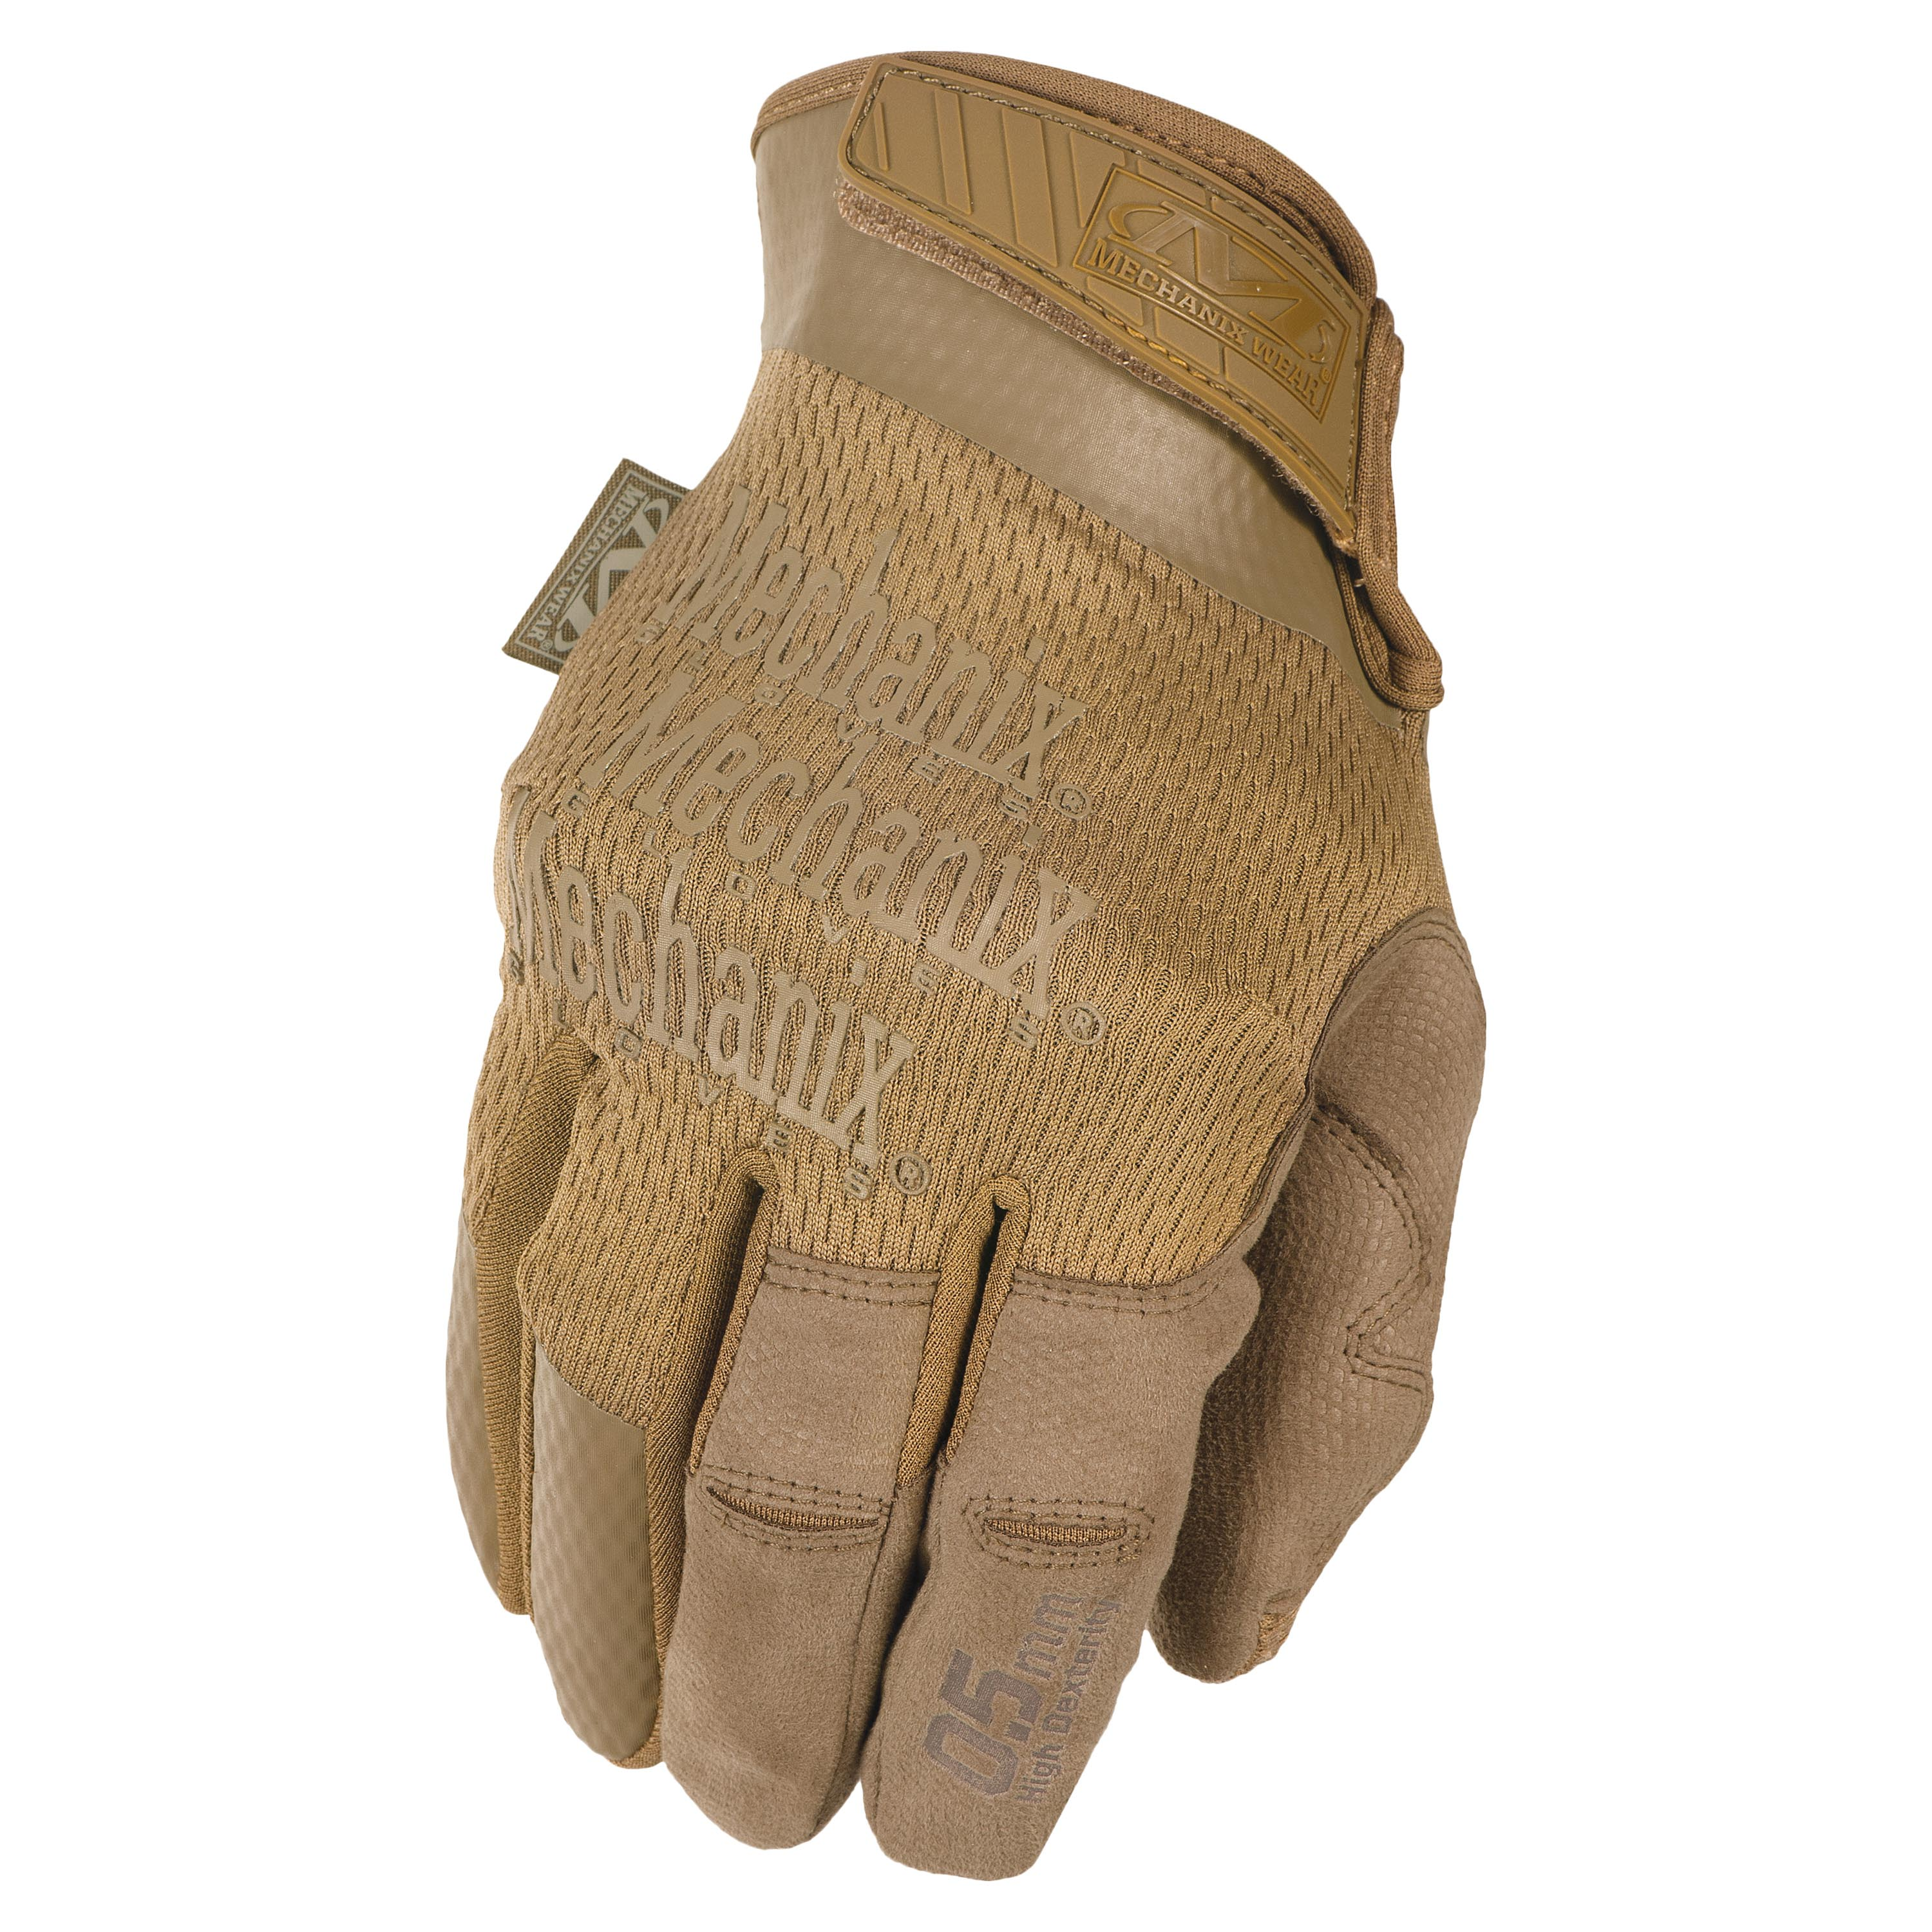 Mechanix Wear Gloves Specialty 0.5 mm coyote